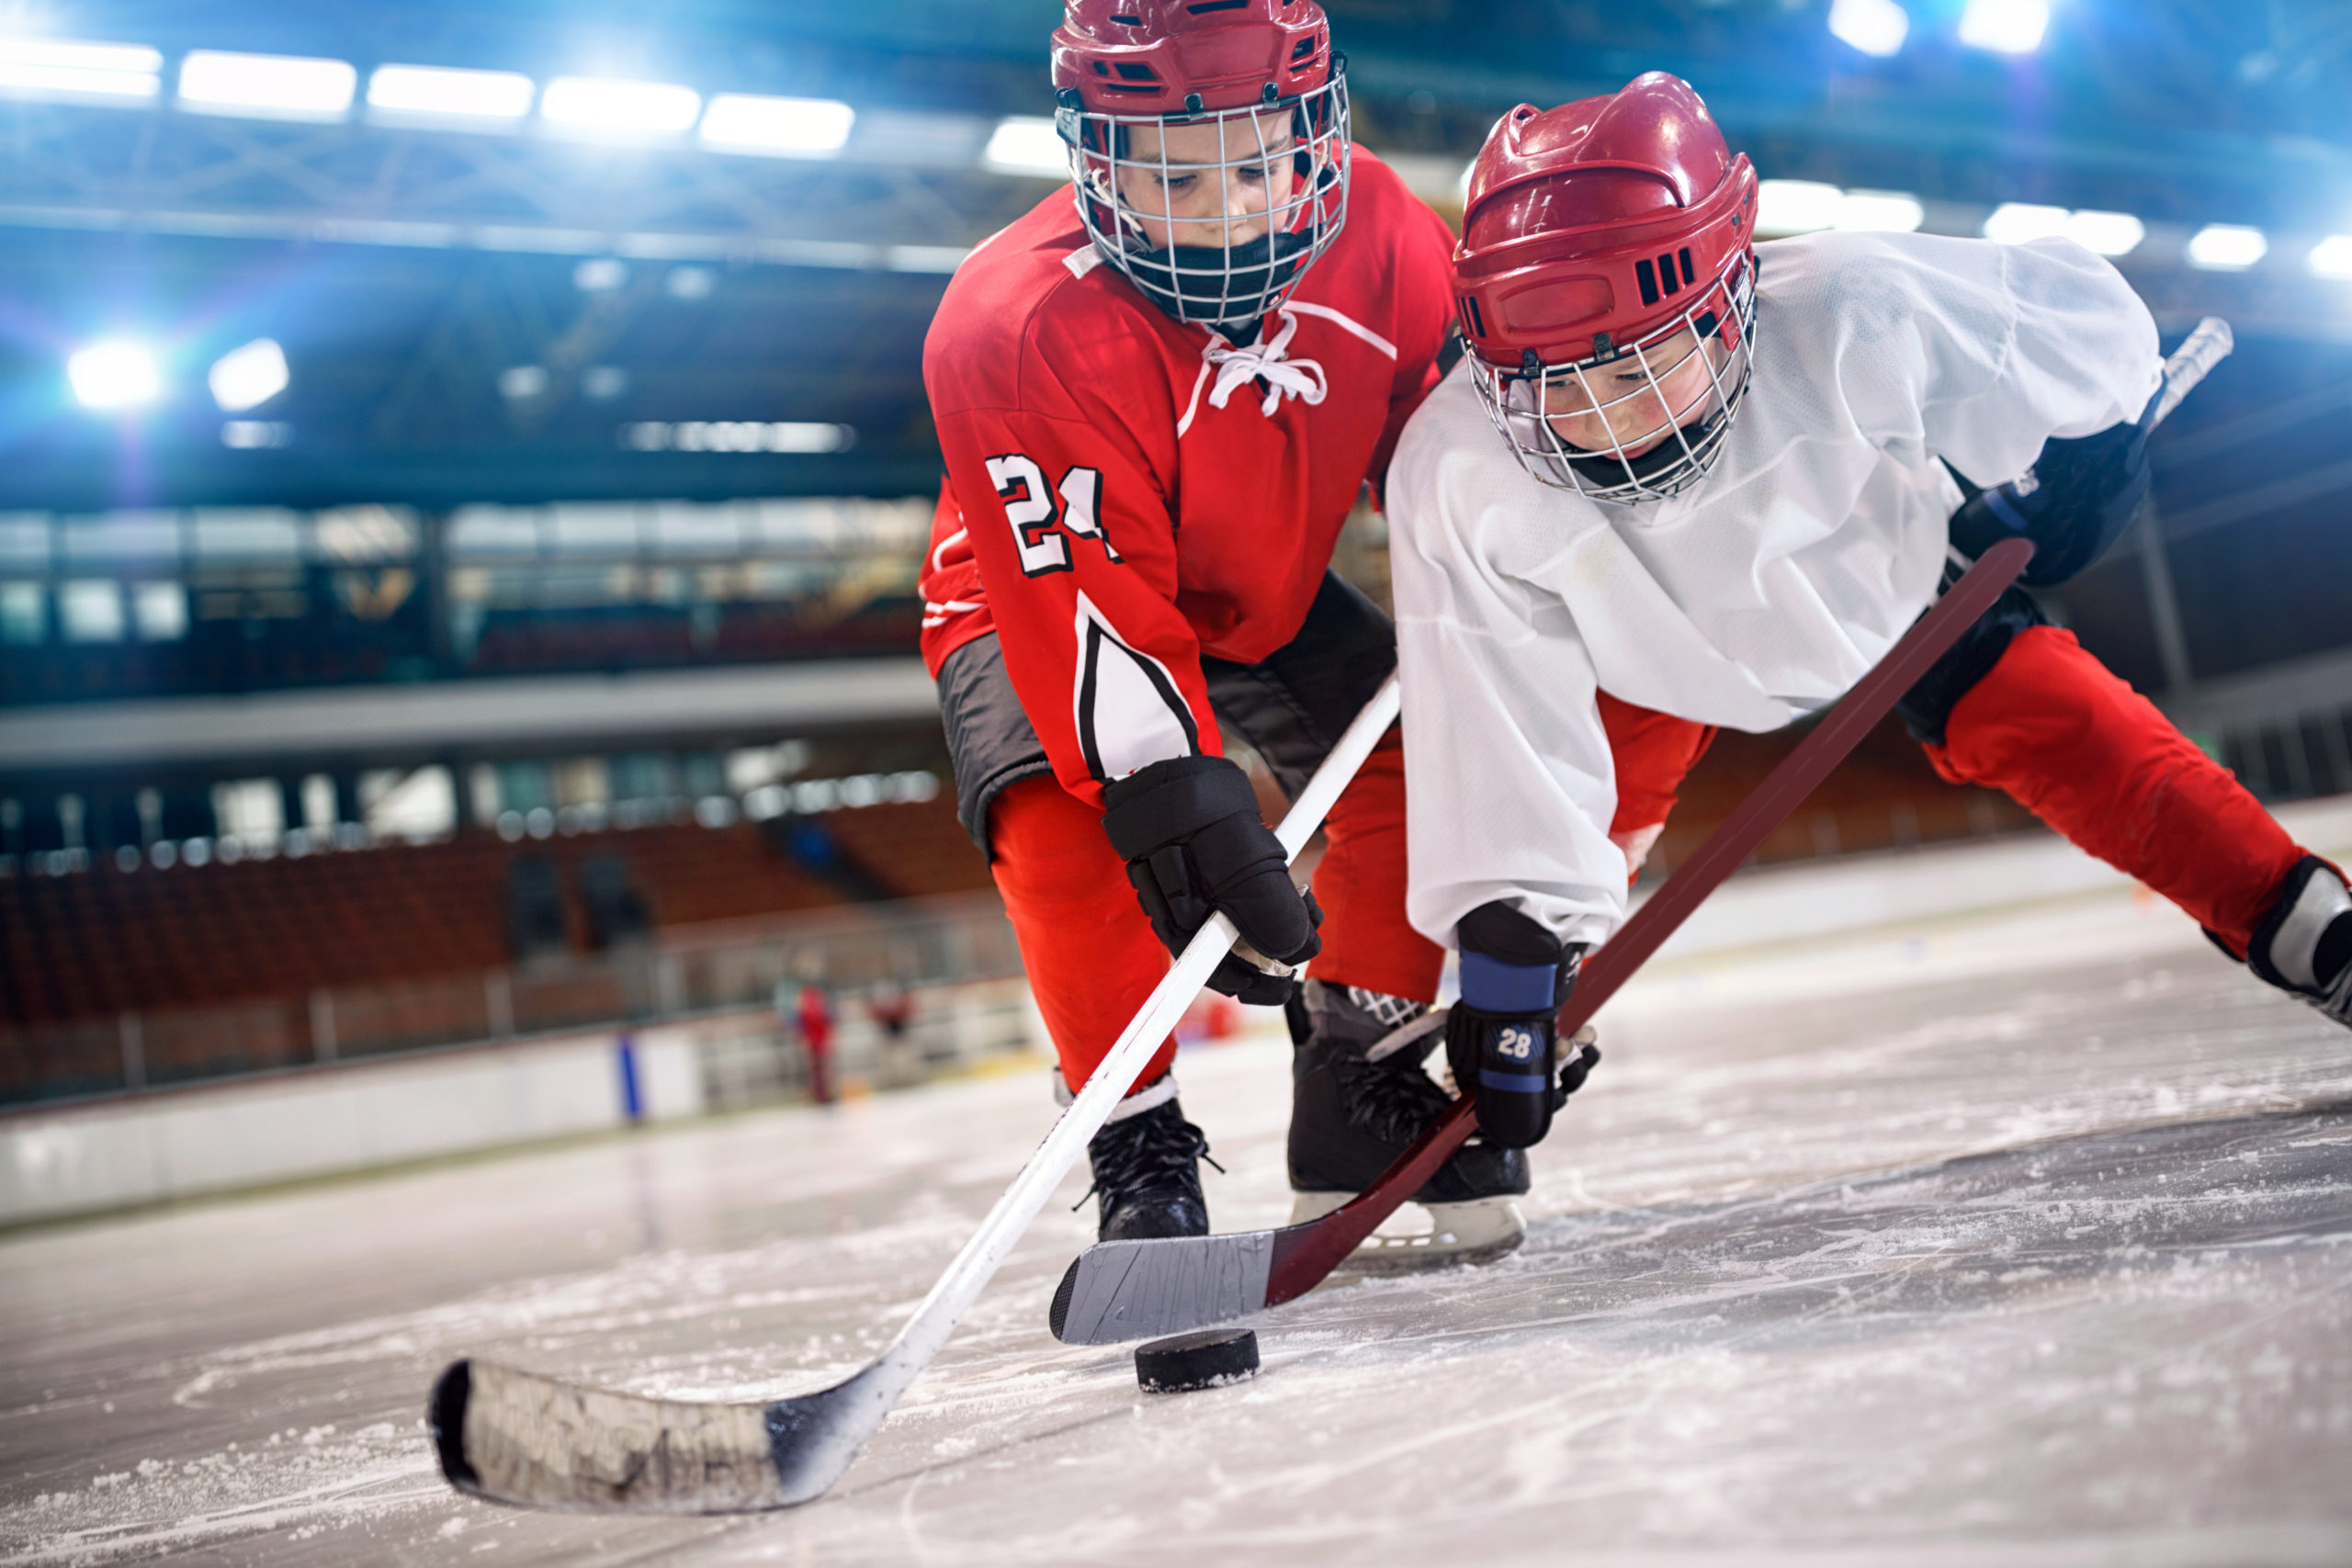 ice hockey good vision idesign bladeless lasik eye surgery